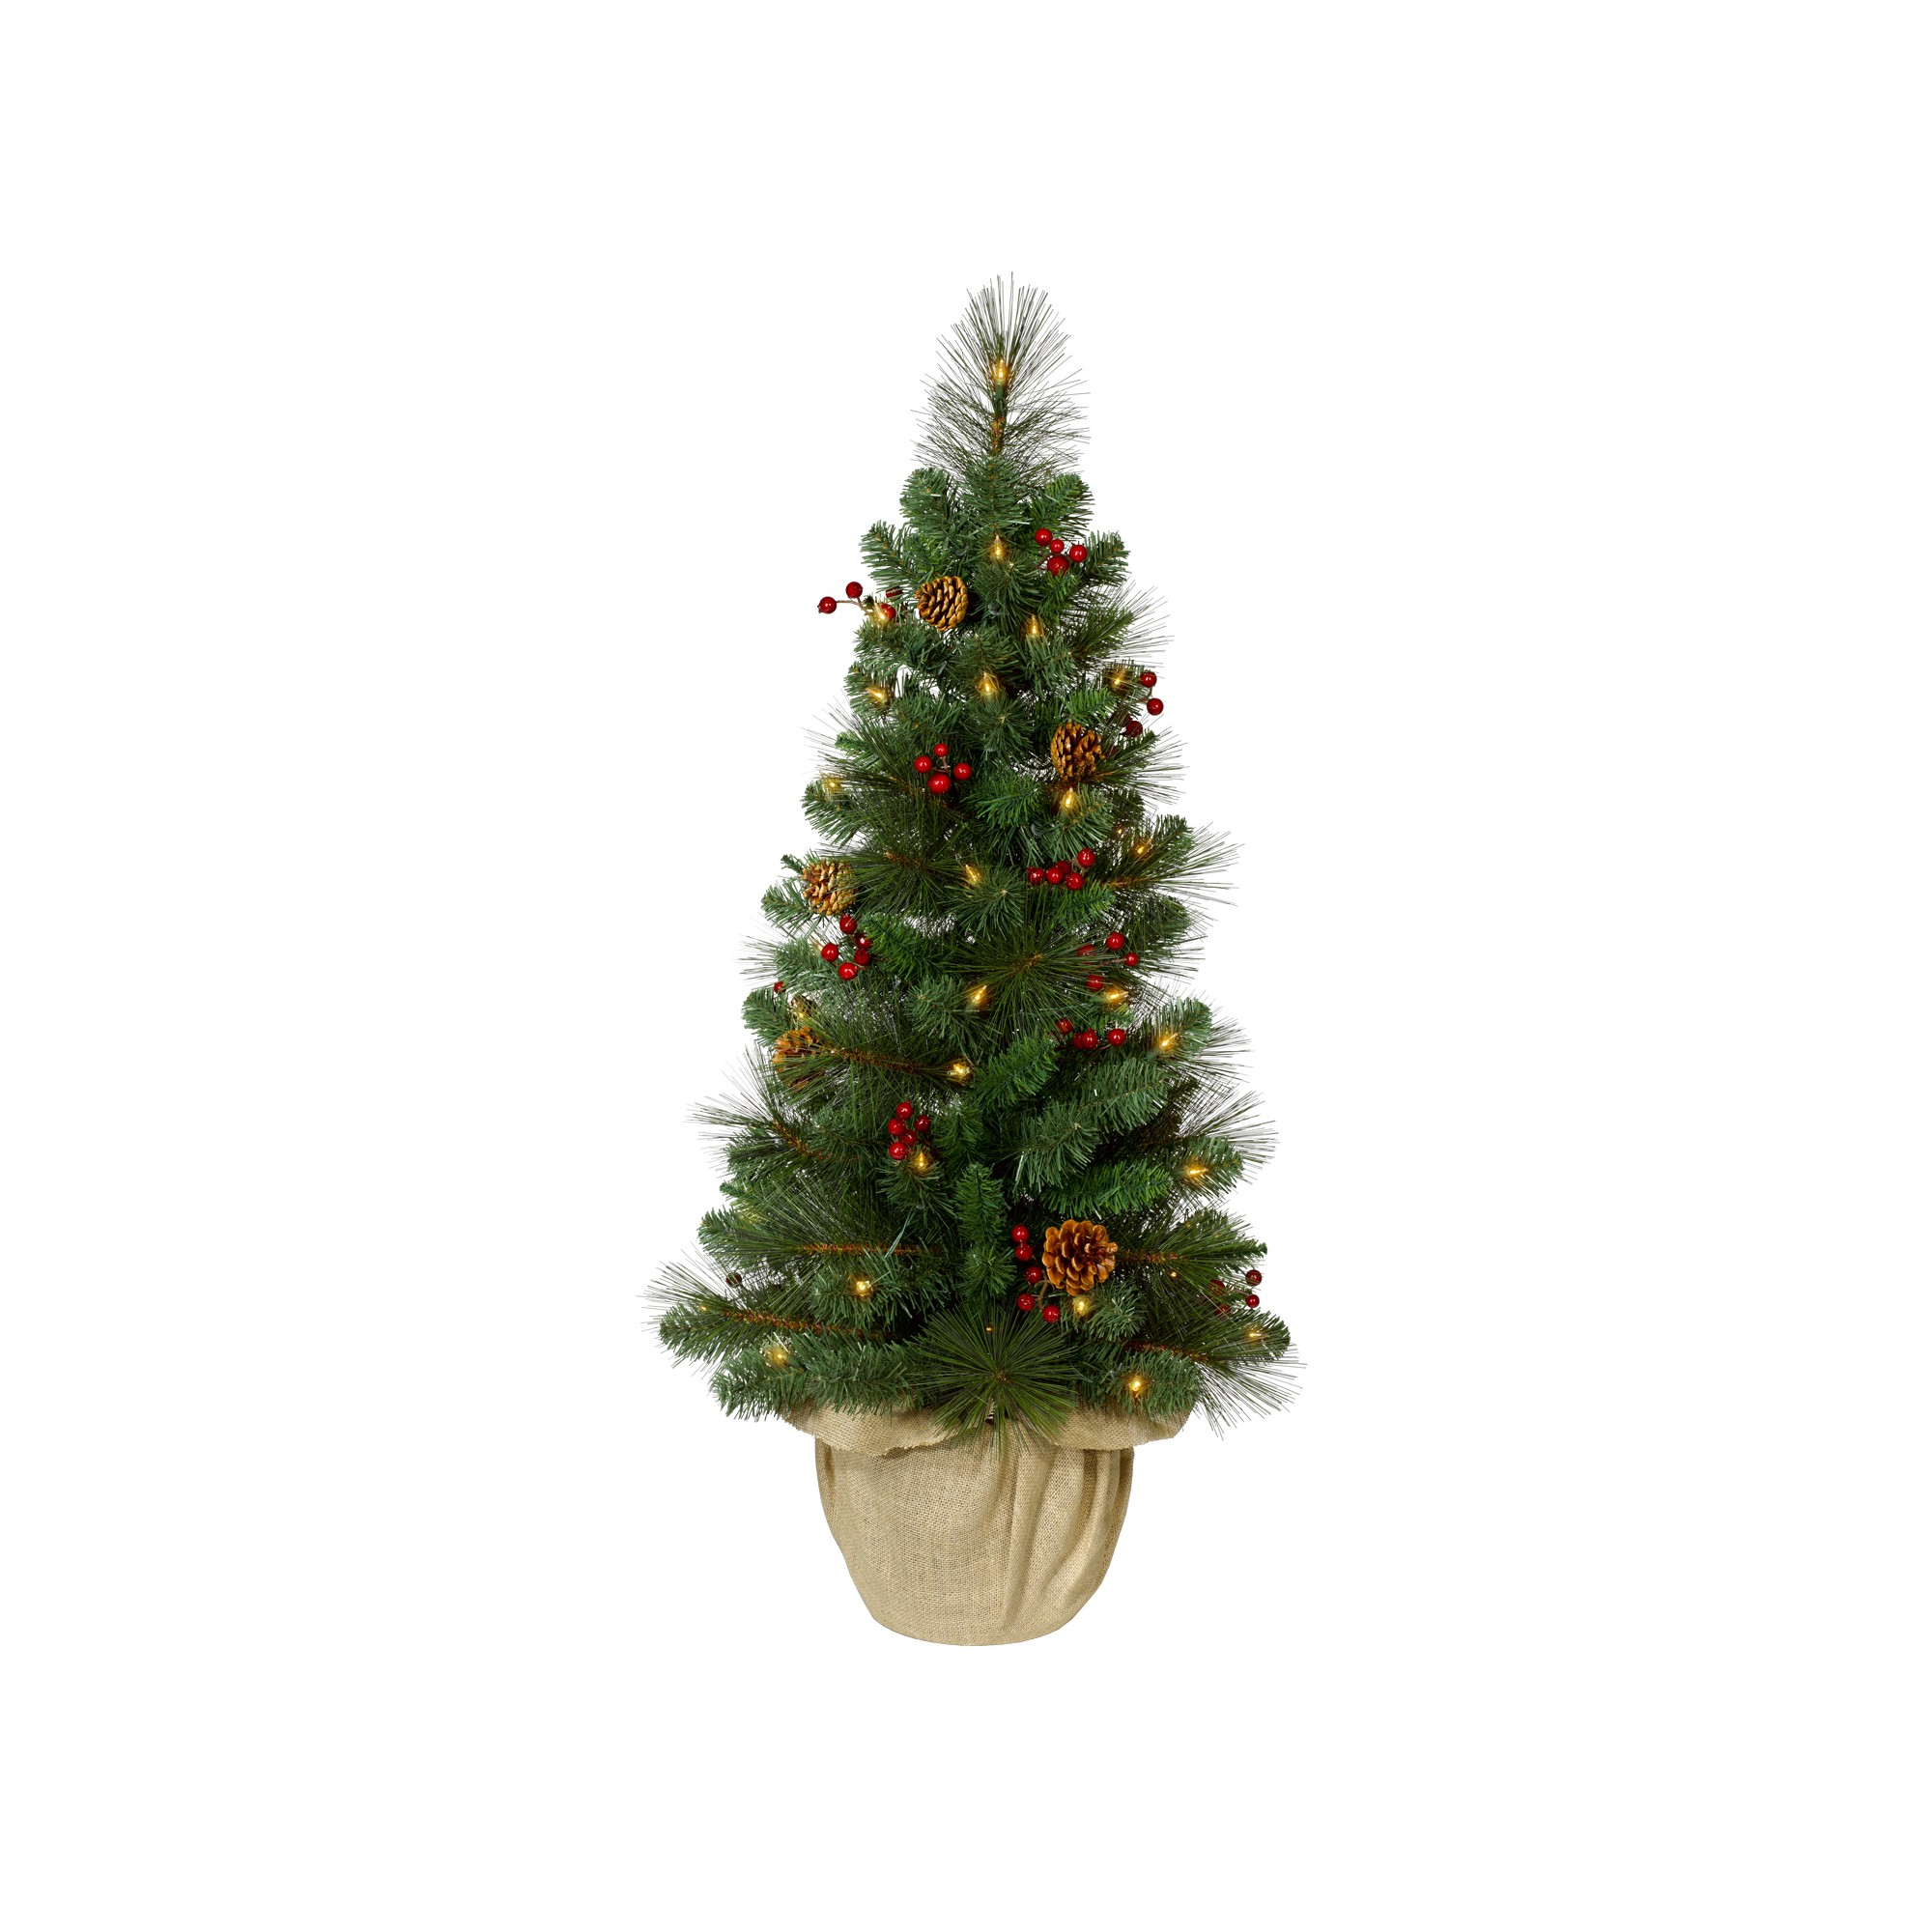 philips prelit artificial christmas tree potted douglas fir warm white led lights jpg 2000x2000 philips led